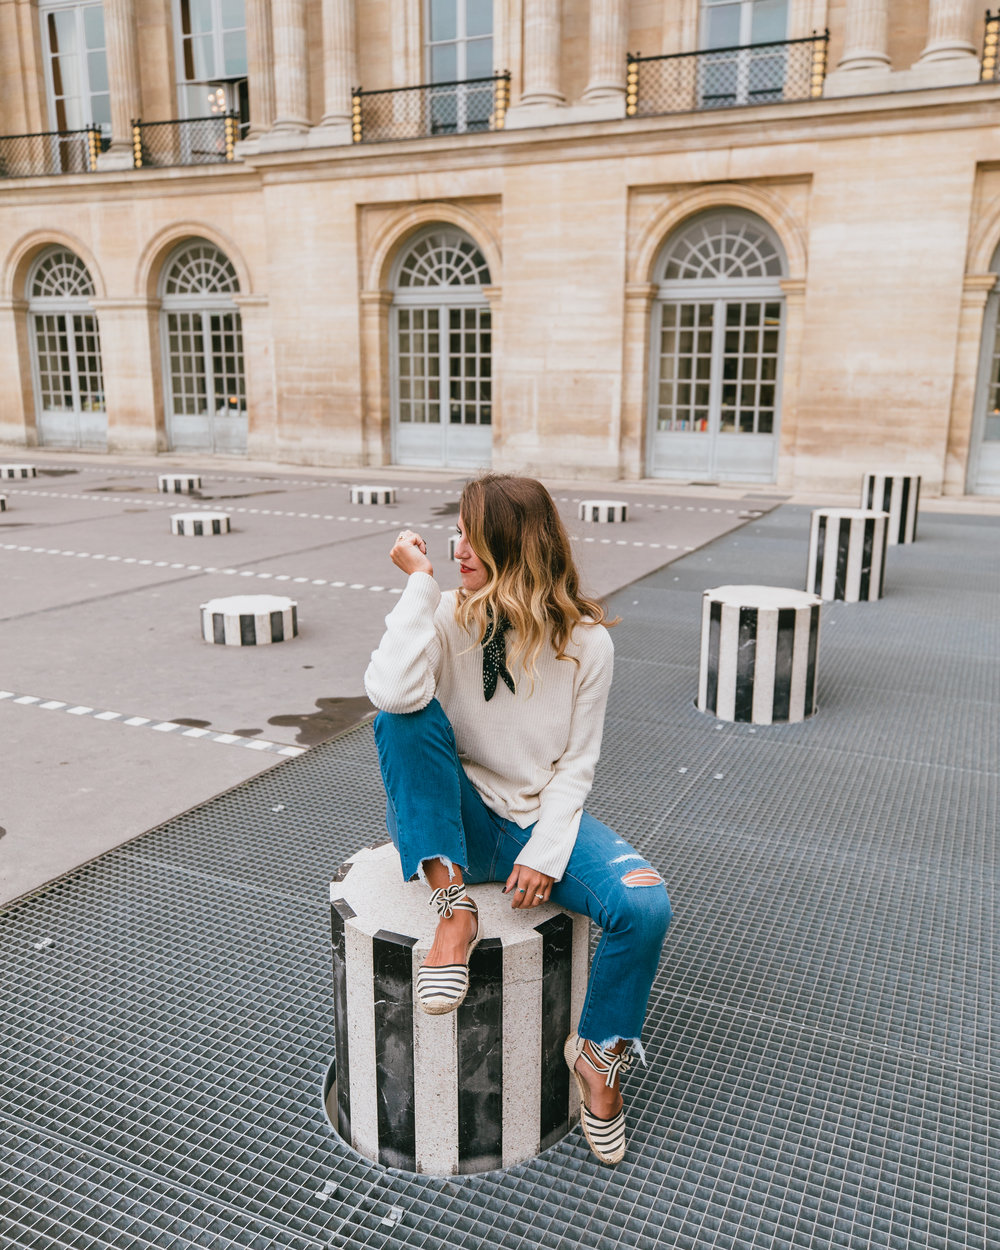 the most instagrammable spots in paris, france